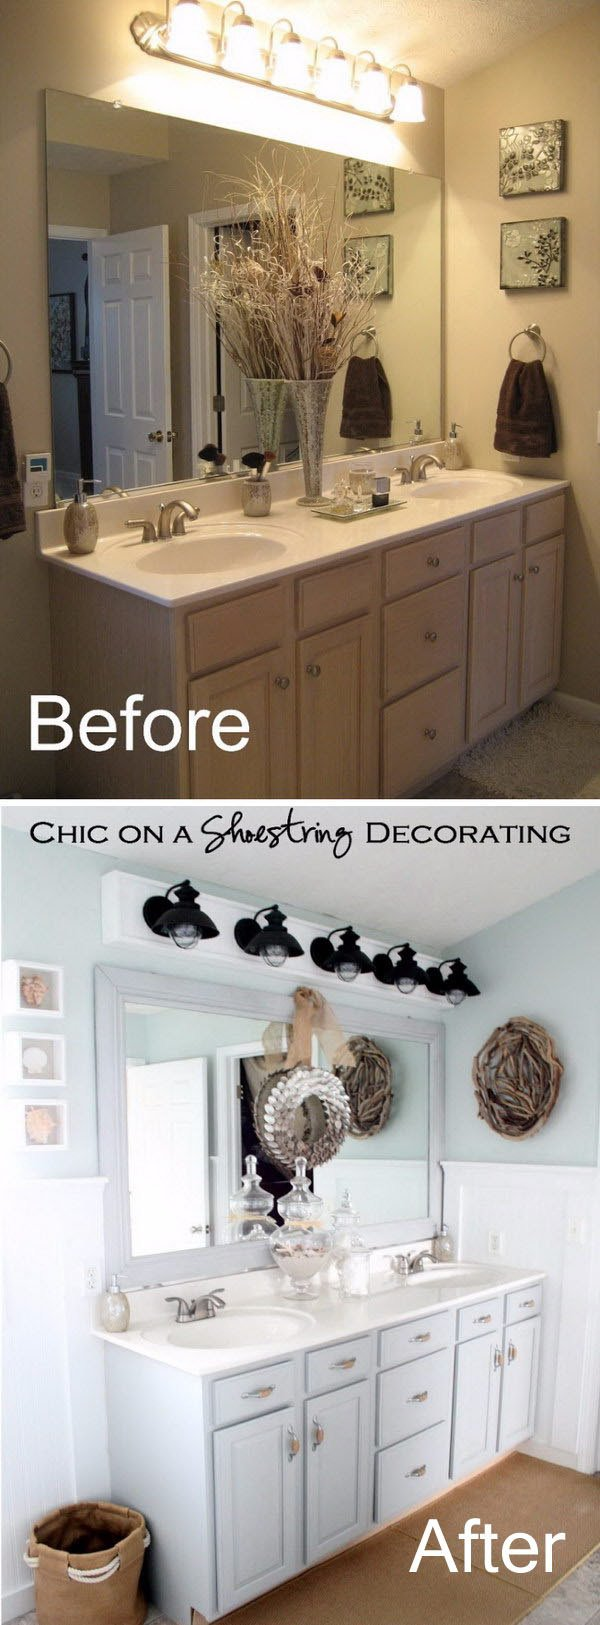 61-bathroom-remodel-before-and-after